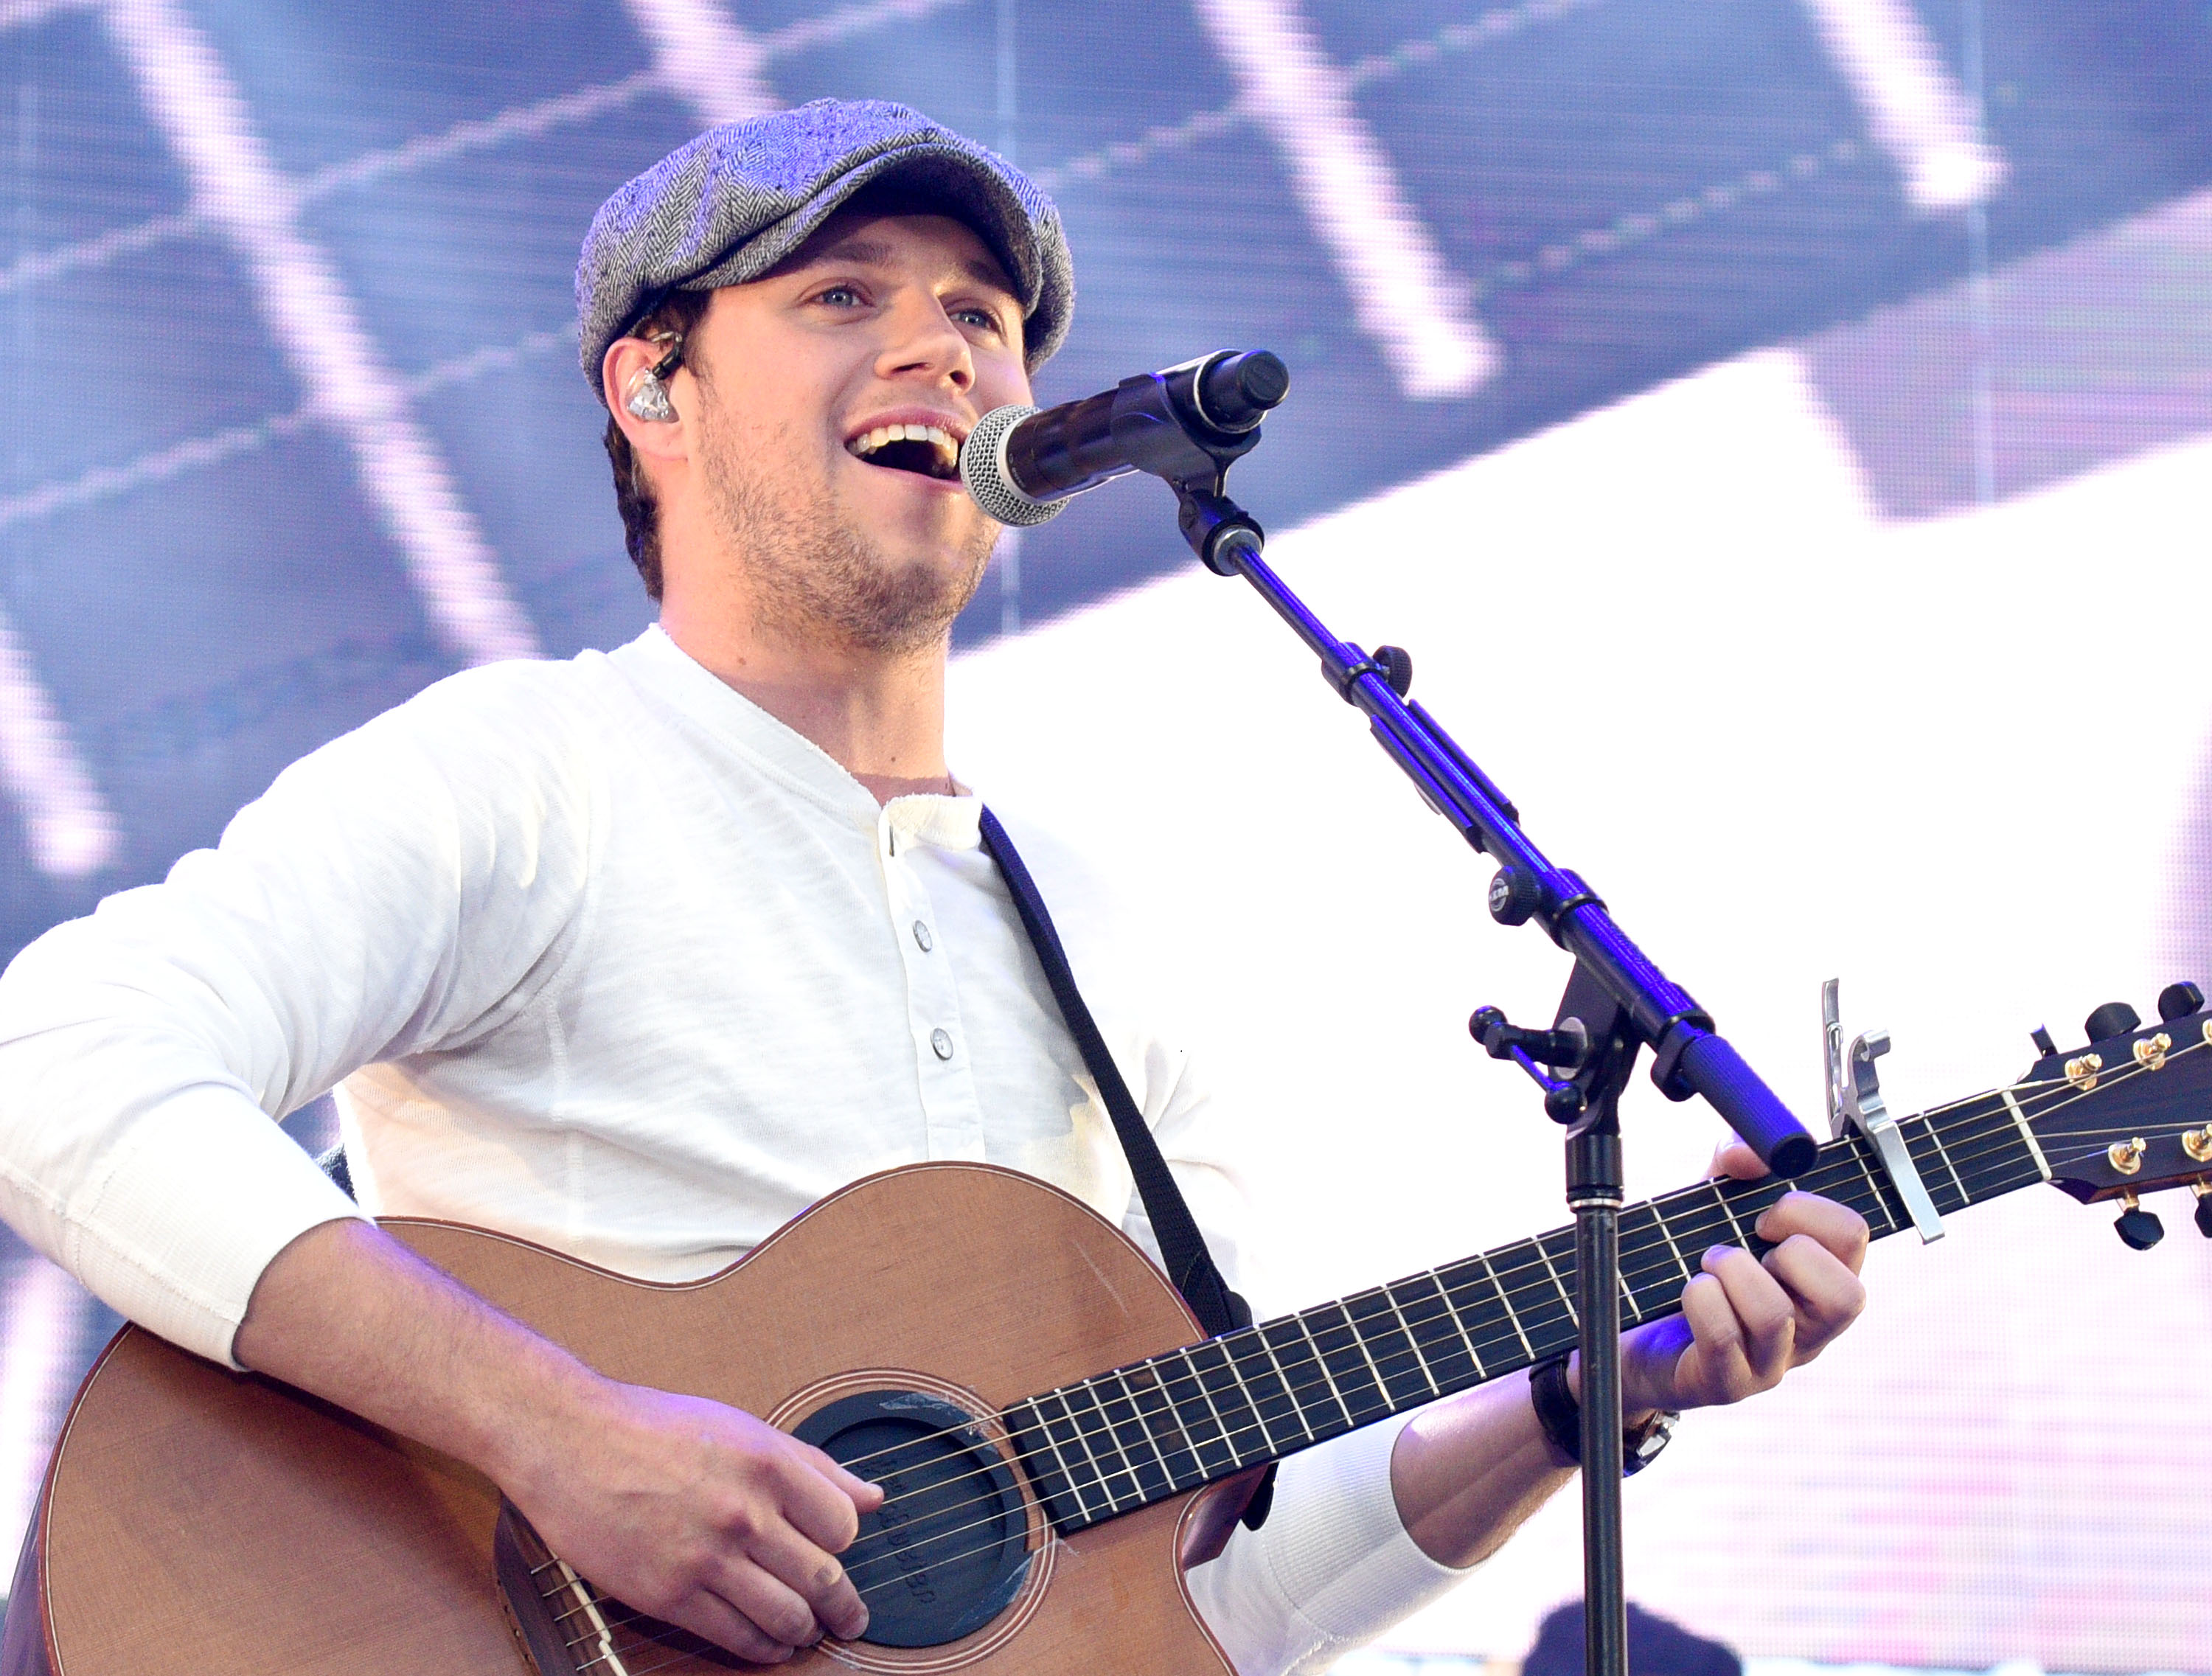 Niall Horan performs onstage during 102.7 KIIS FM's 2017 Wango Tango at StubHub Center on May 13, 2017 in Carson, California.